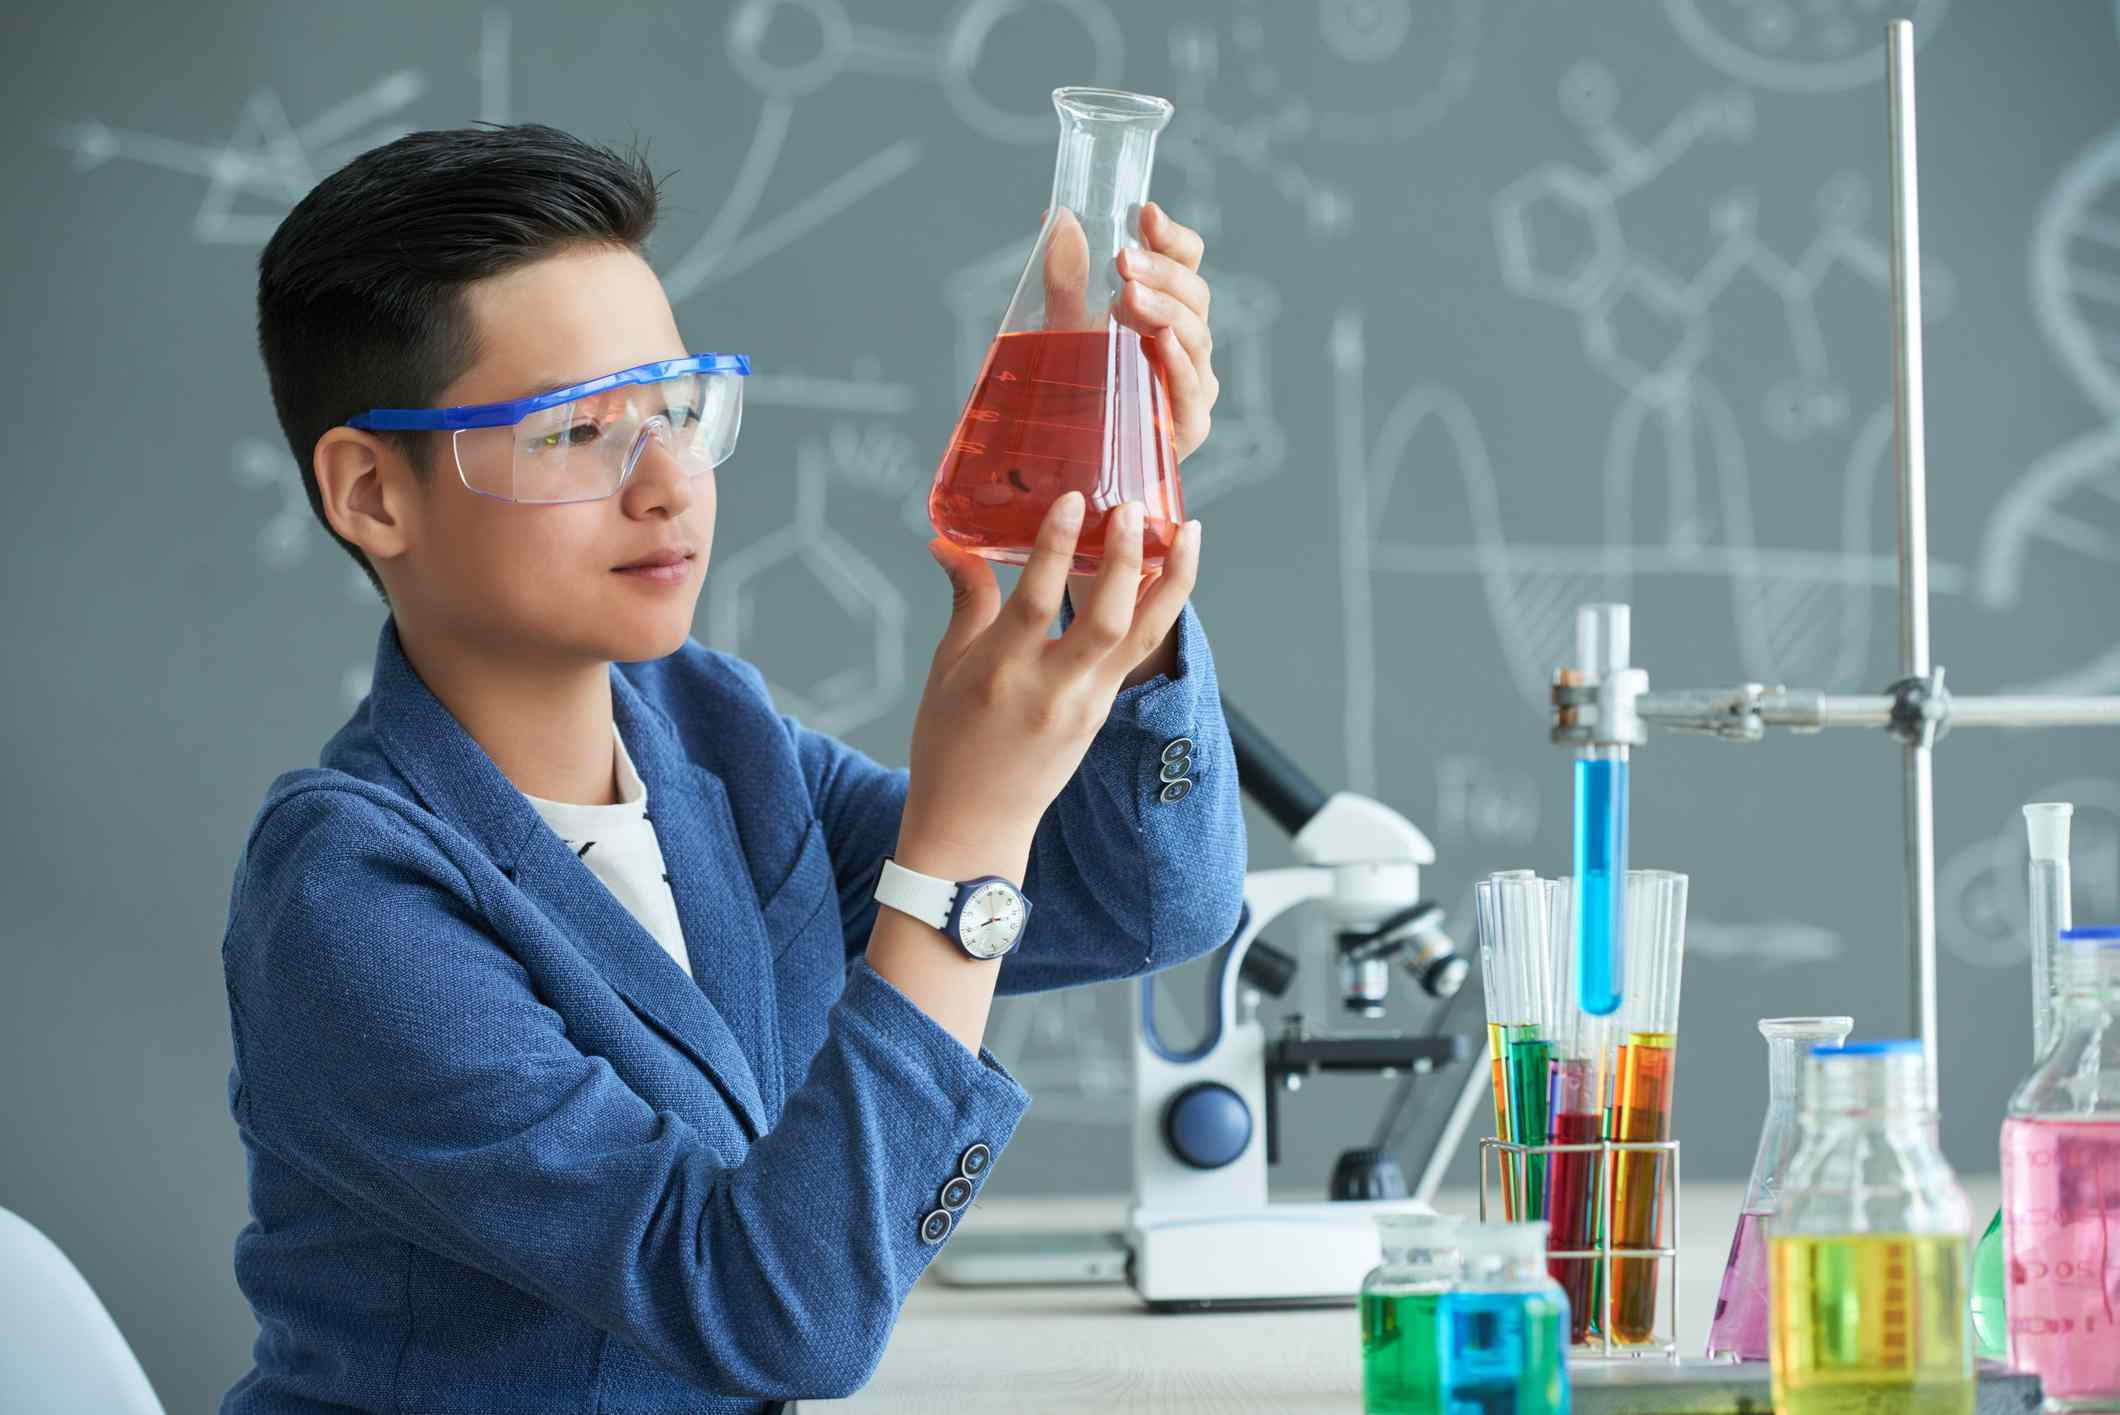 School boy looking at flask with red liquid